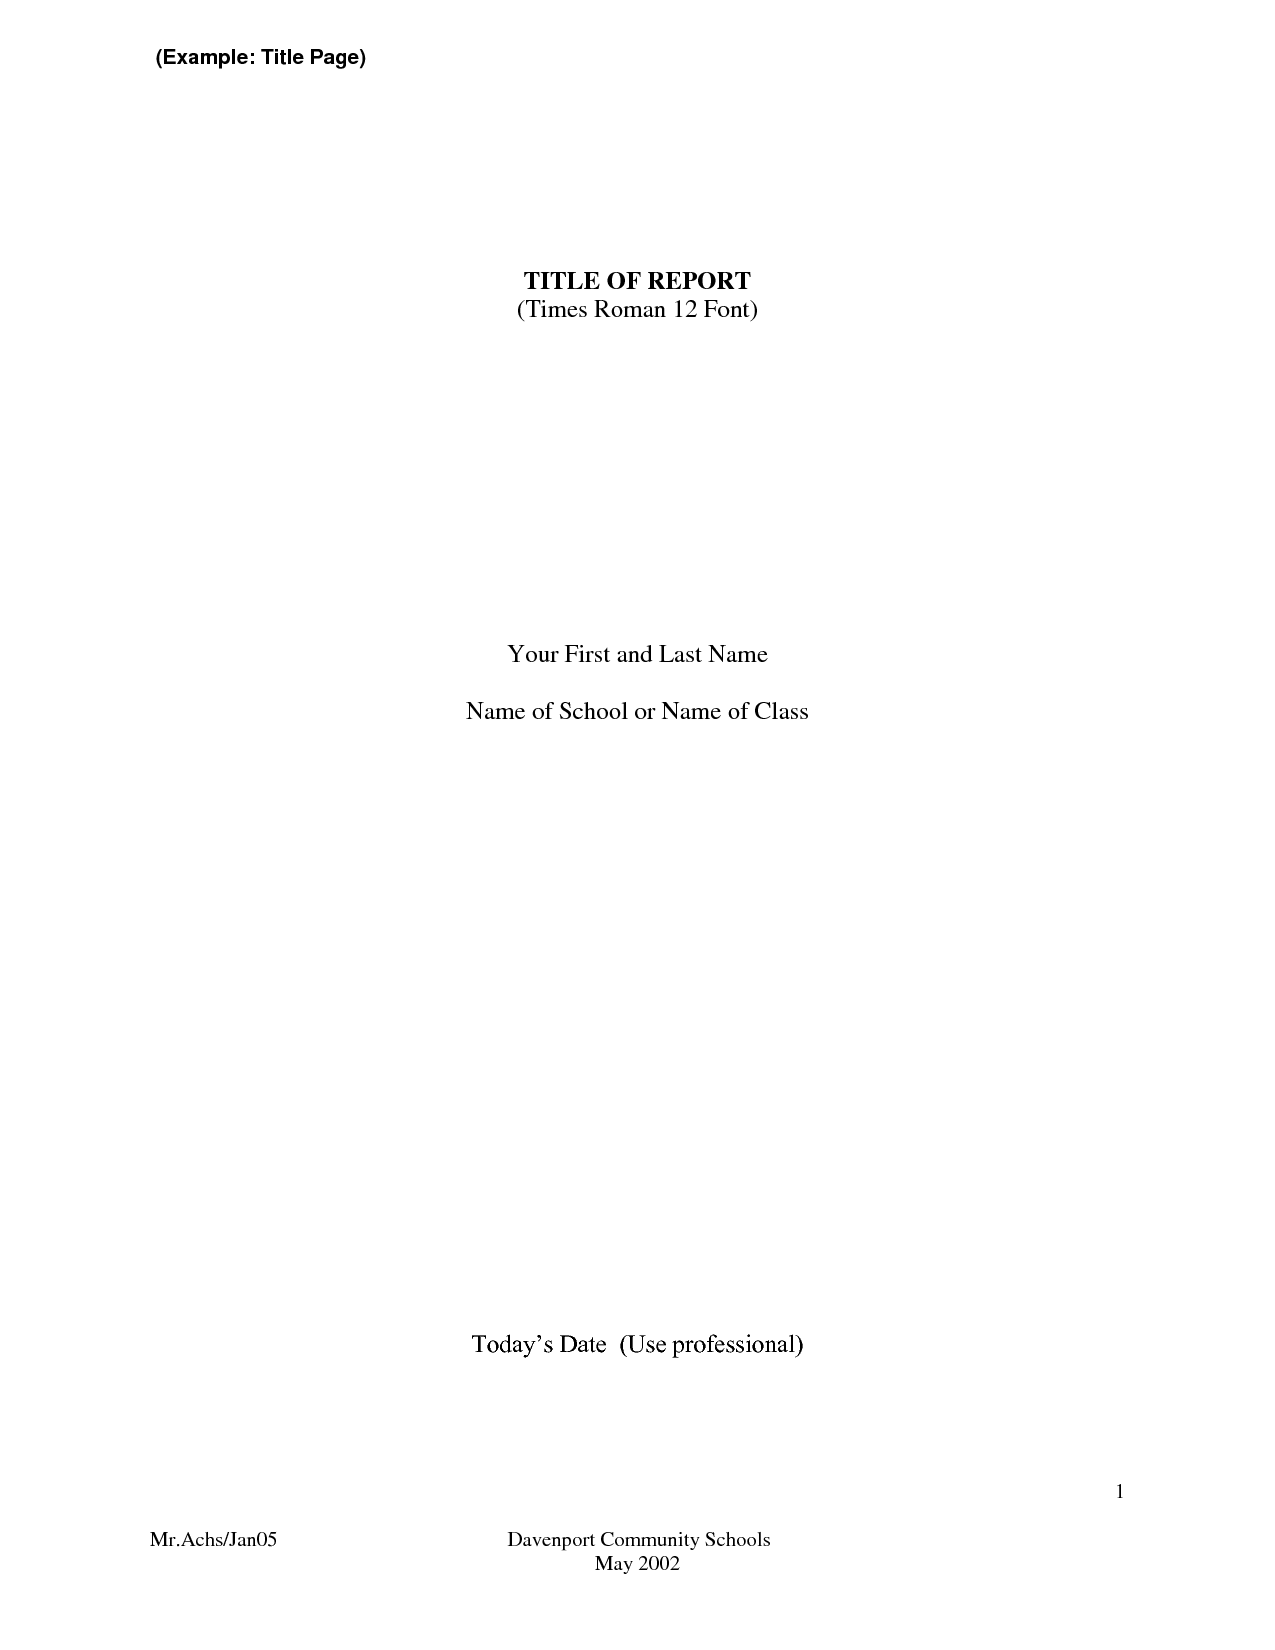 007 Research Paper Brilliant Ideas Of Title Page Example Apa Format Sample Cover For Amazing Titles First Unique Mla Style The A Full